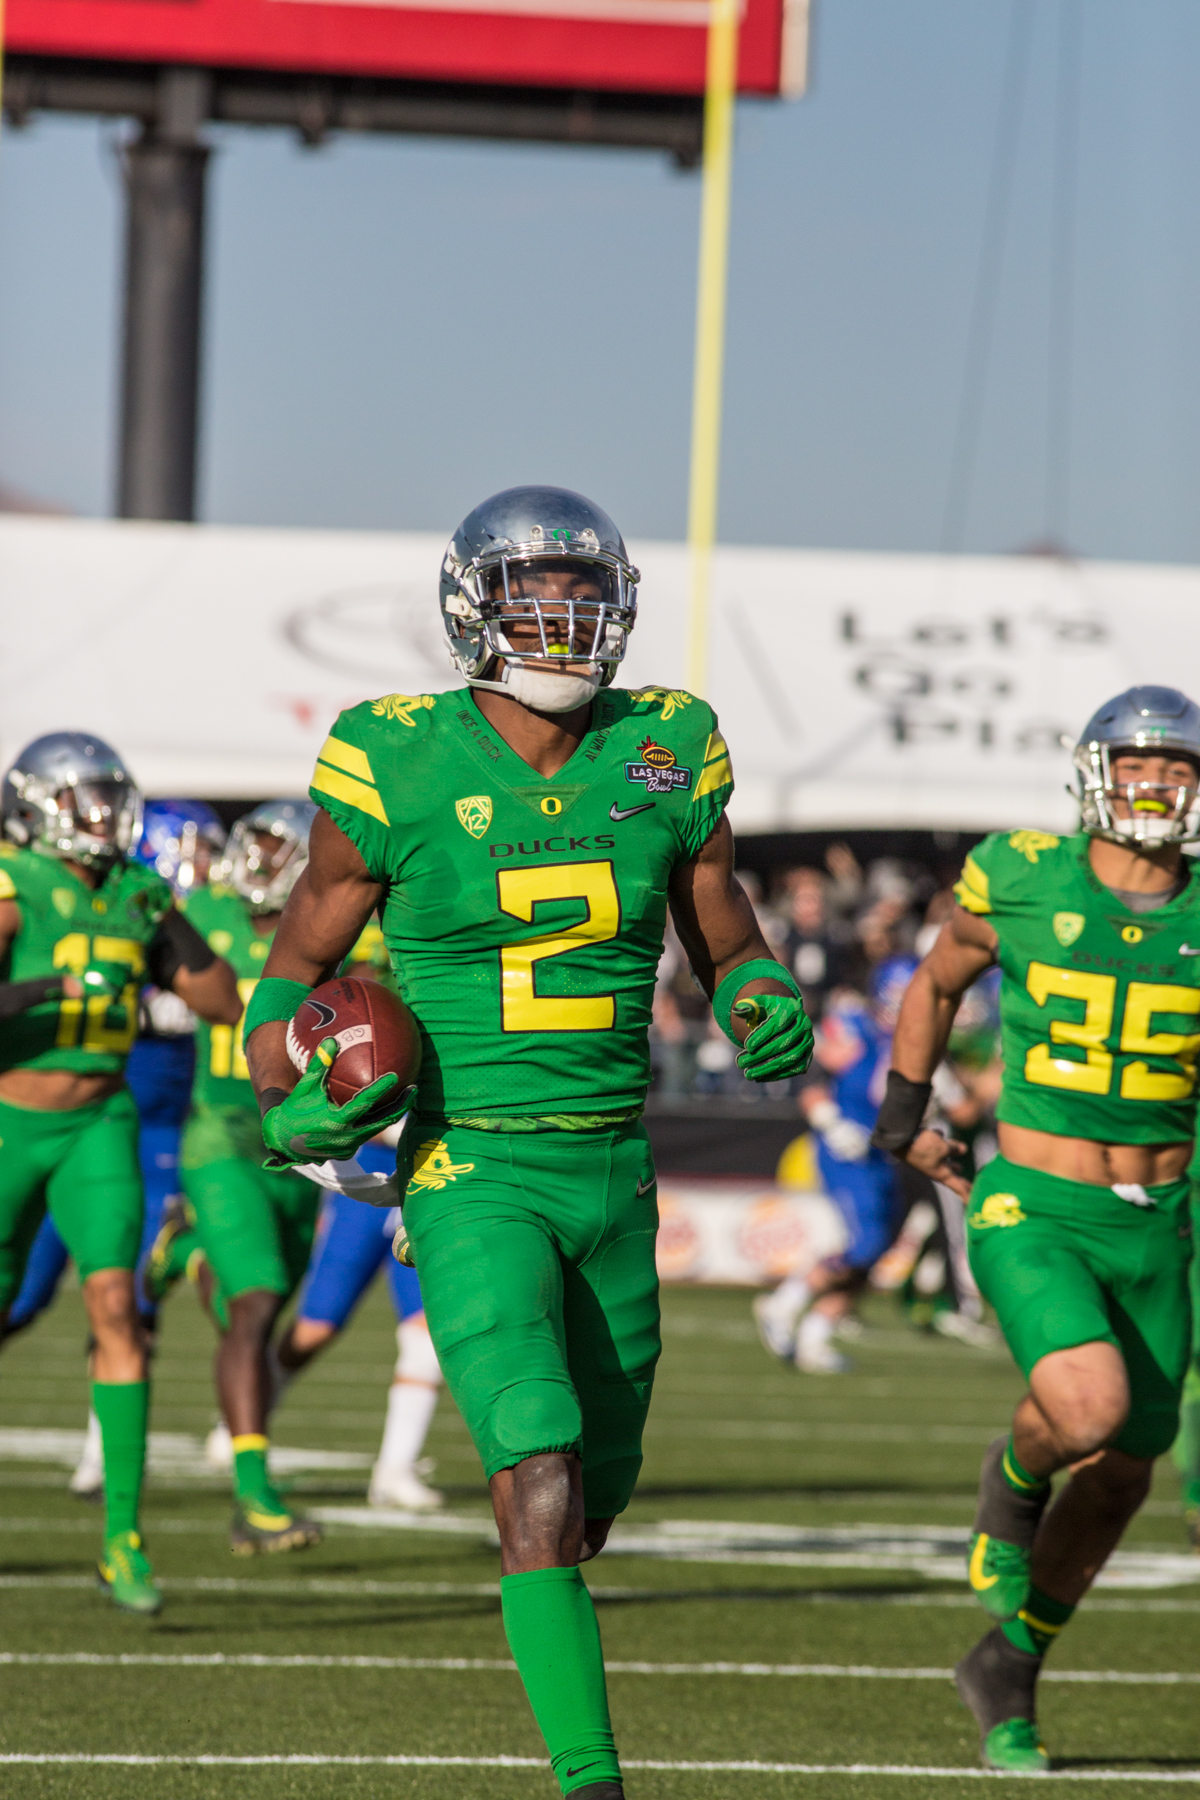 Oregon safety Tyree Robinson (#2) runs the ball for a touchdownfollowing a Boise State fumble. The Oregon Ducks trail the Boise State Broncos 14 to 24 at the end of the first half of the Las Vegas Bowl at Sam Boyd Stadium in Las Vegas, Nevada. Photo by Ben Lonergan, Oregon News Lab